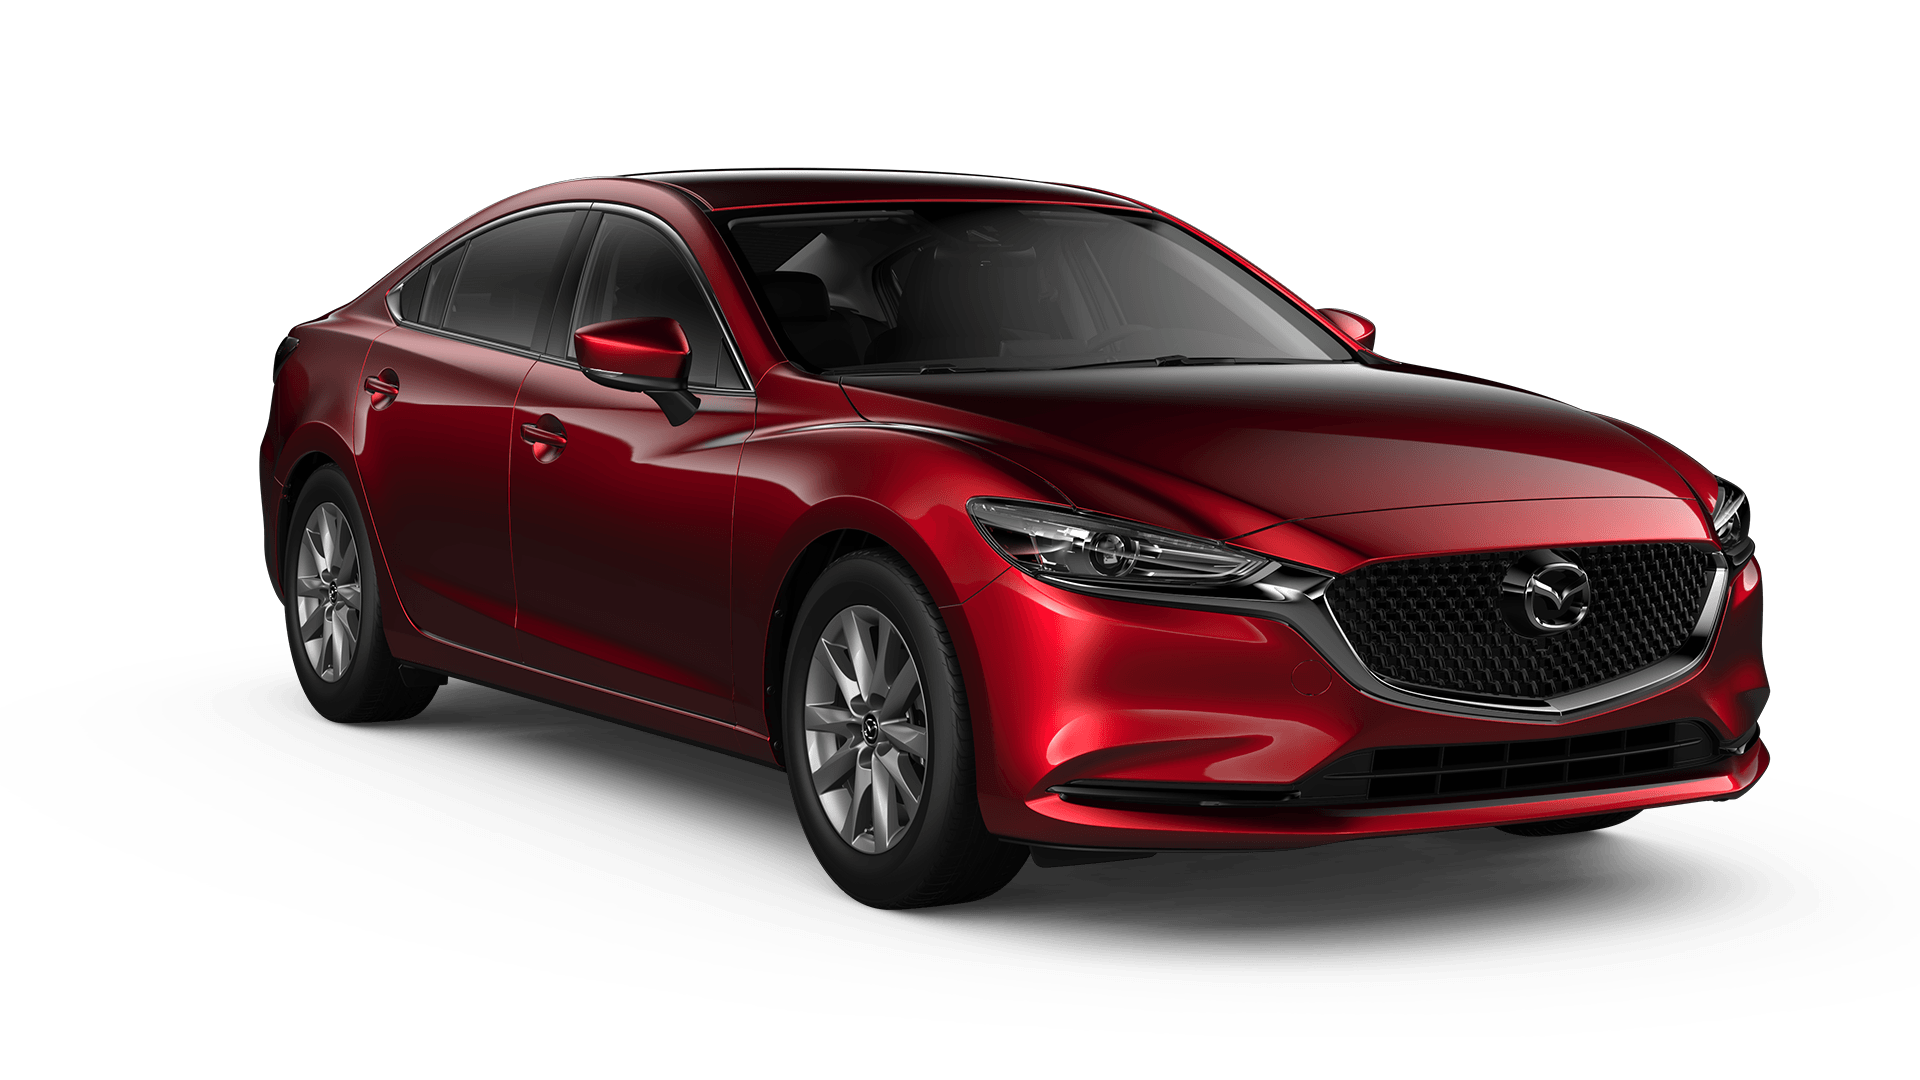 6-SPEED AUTOMATIC TRANSMISSION 2021 MAZDA6 GS